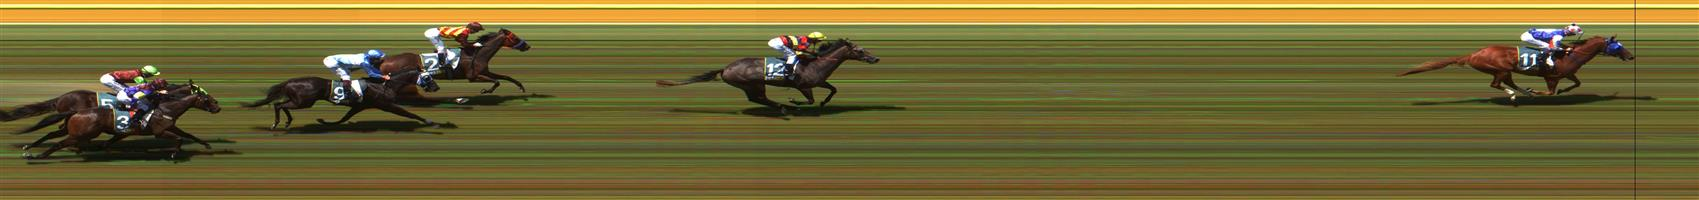 GEELONG Race 4 No. 6 Clap Chap @ $41 - price unlikely   Result : Non Qualifier - Unplaced at SP $26.00